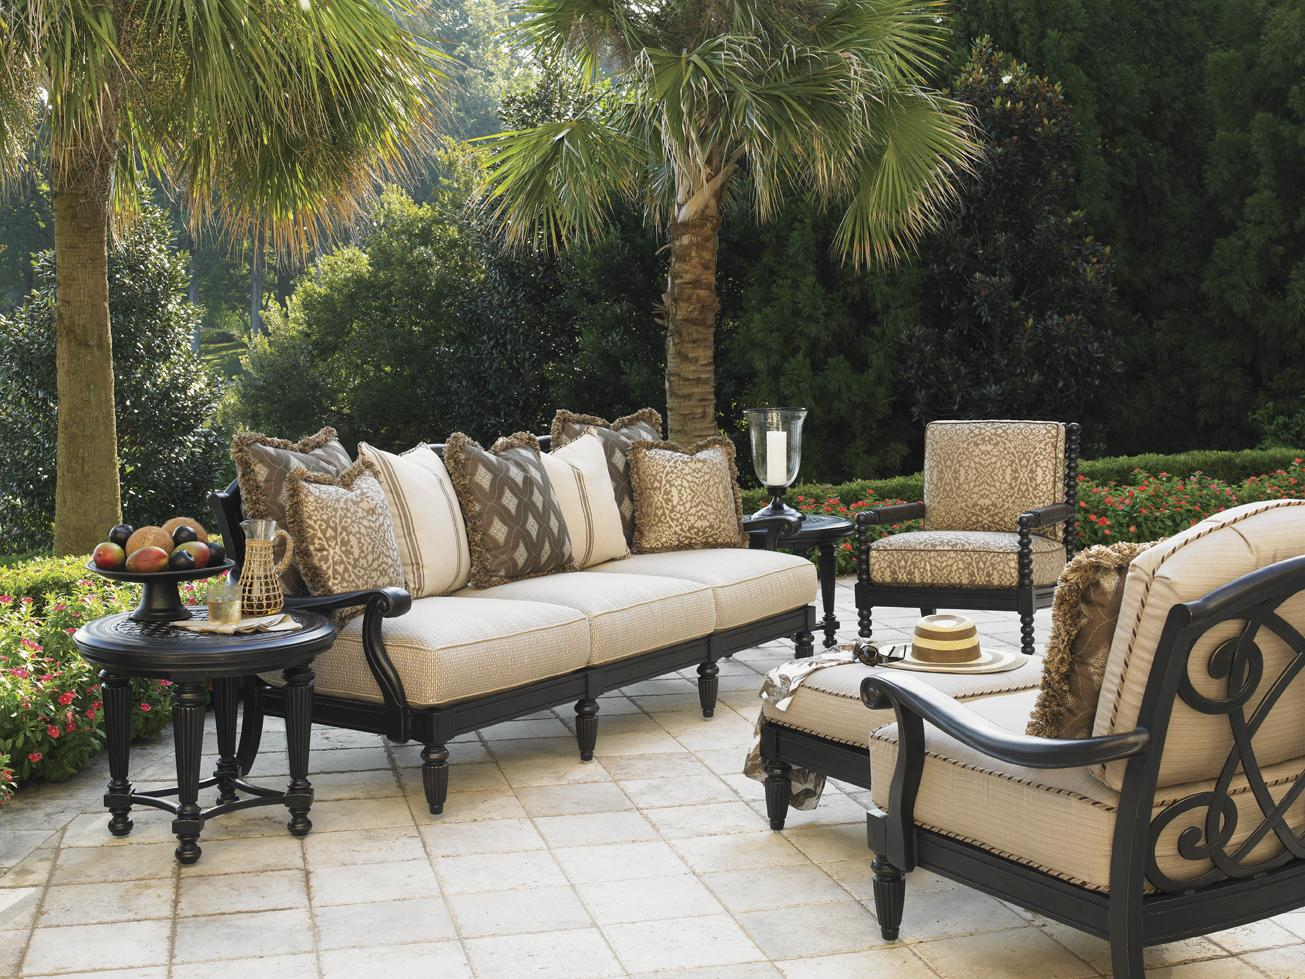 Kingstown Sedona 3190 By Tommy Bahama Outdoor Living Baer 39 S Furniture Tommy Bahama Outdoor